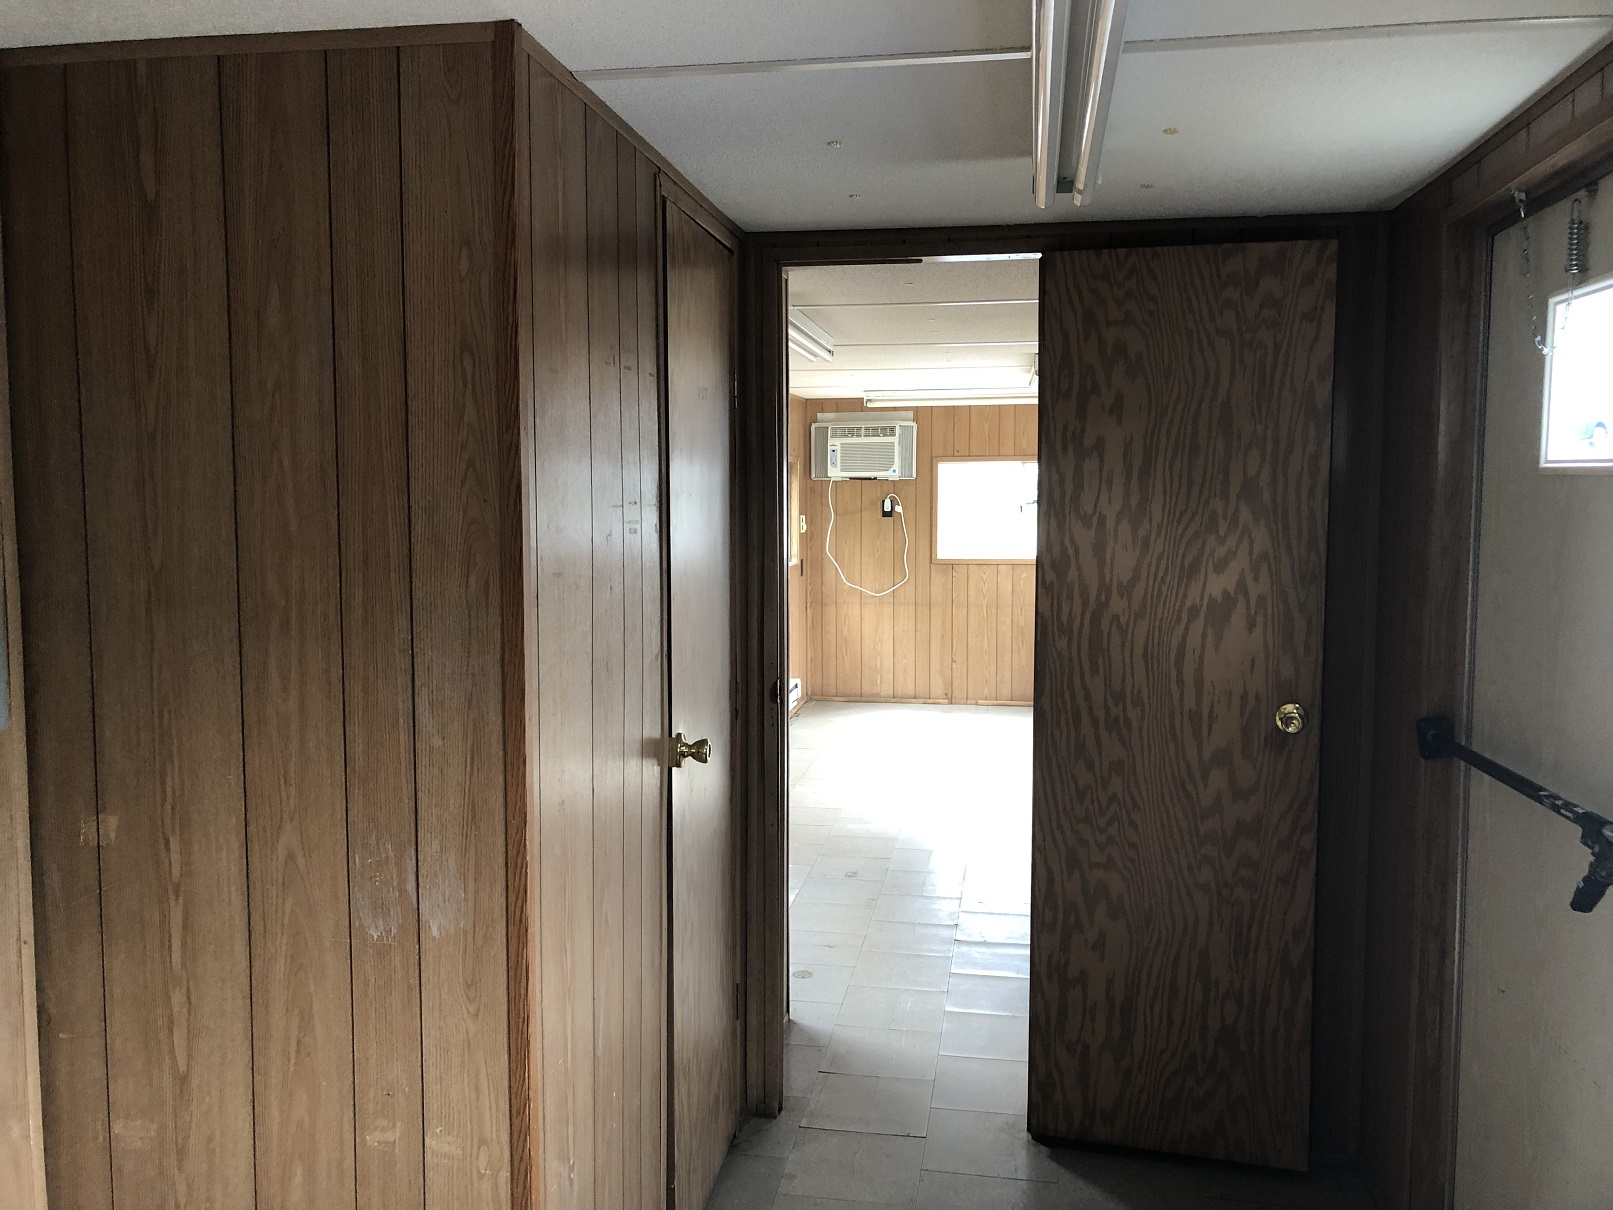 36'x8' used mobile office for sale in Louisville, KY - AMO-351961-5